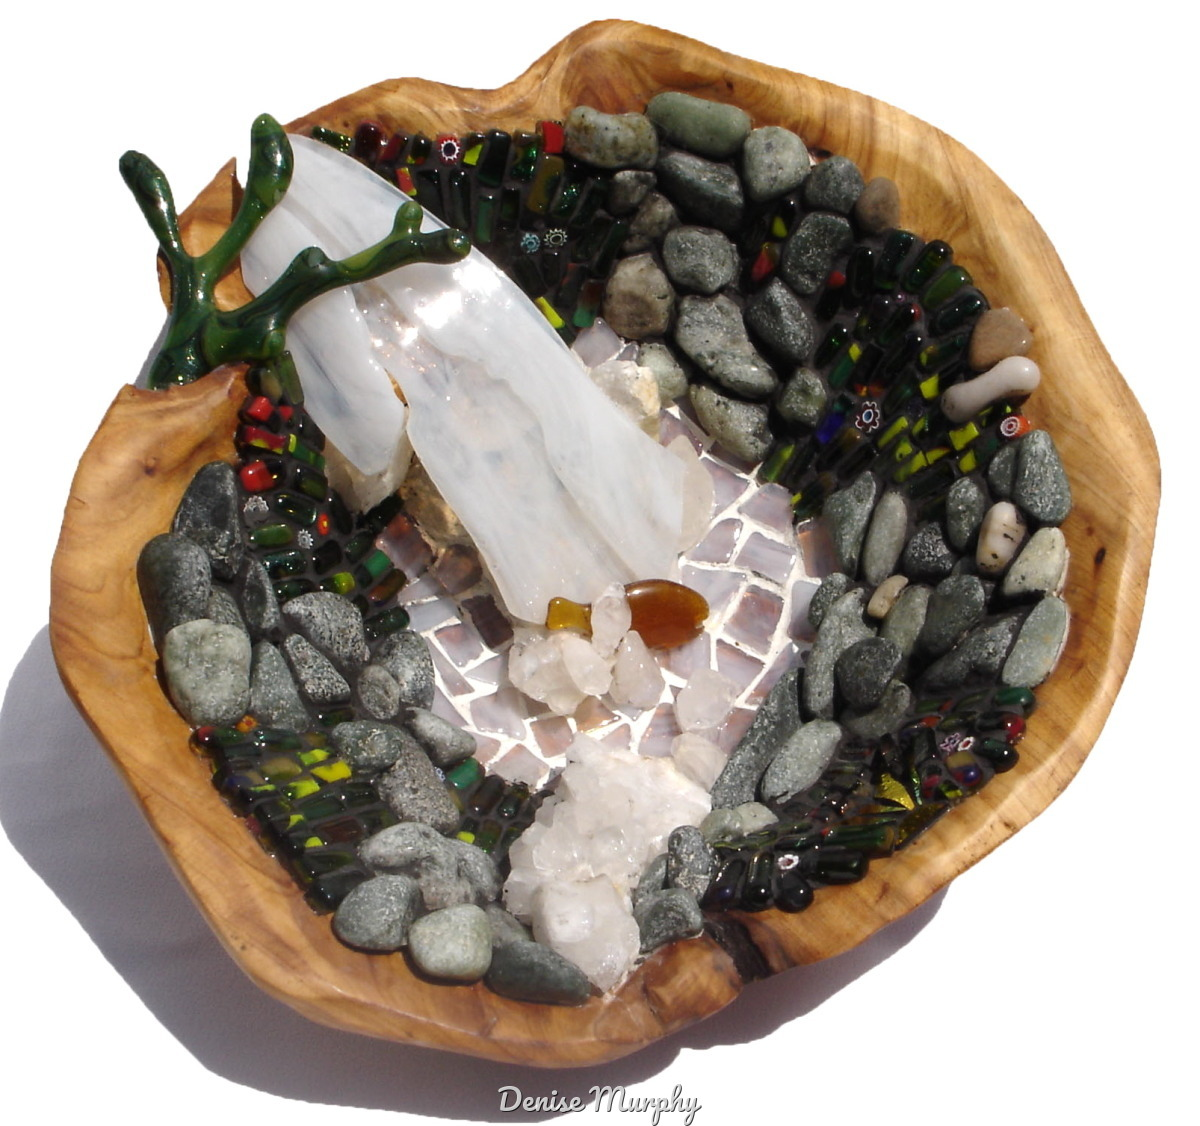 mosaic waterfall scen in wooden bowl sculpture by Denise Murphy (large view)